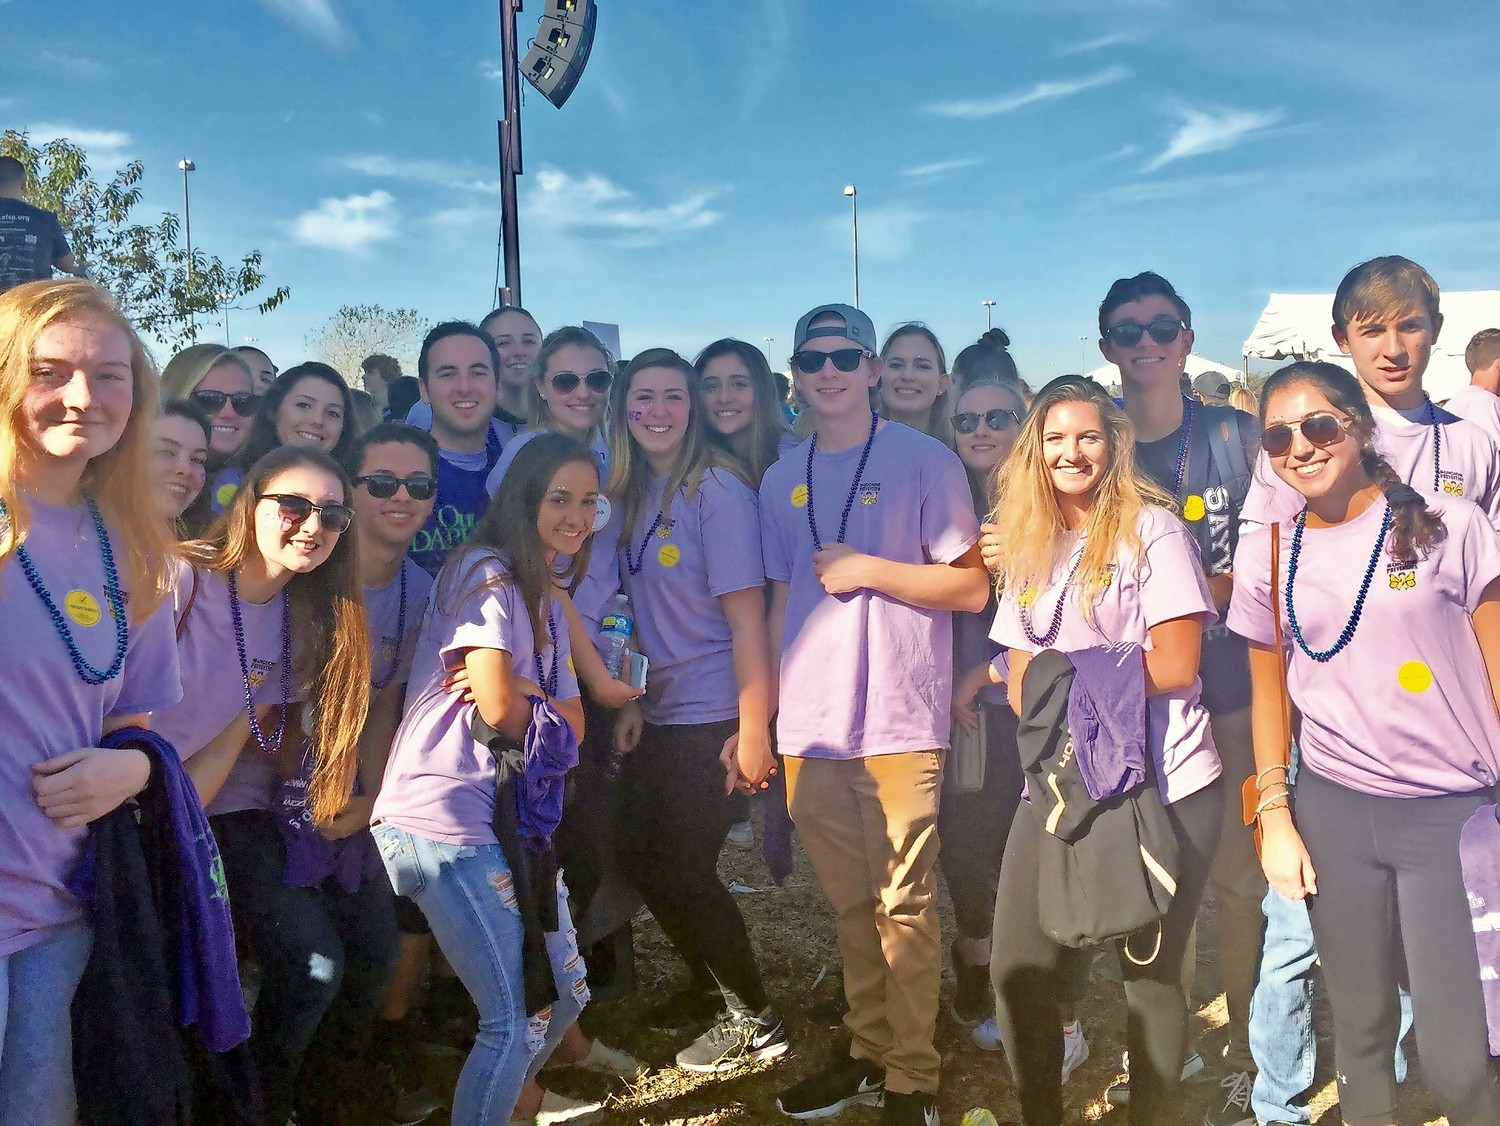 Team Emma was the second top fundraising team for the Out of Darkness Walk. The Sayville High School students raised over $16,000 in just one week.